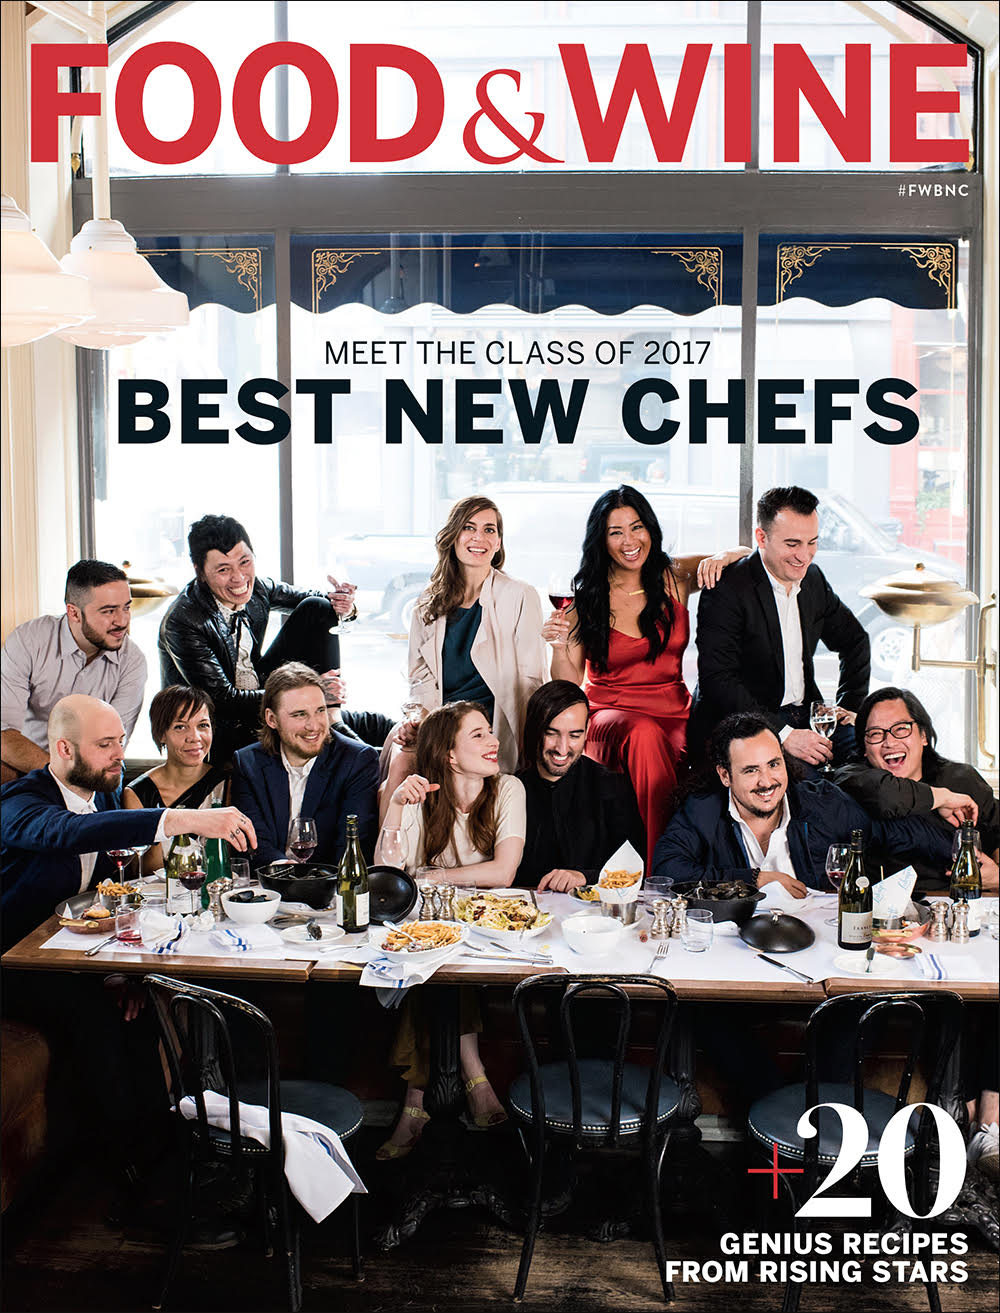 FOOD & WINE BEST NEW CHEFS 2017